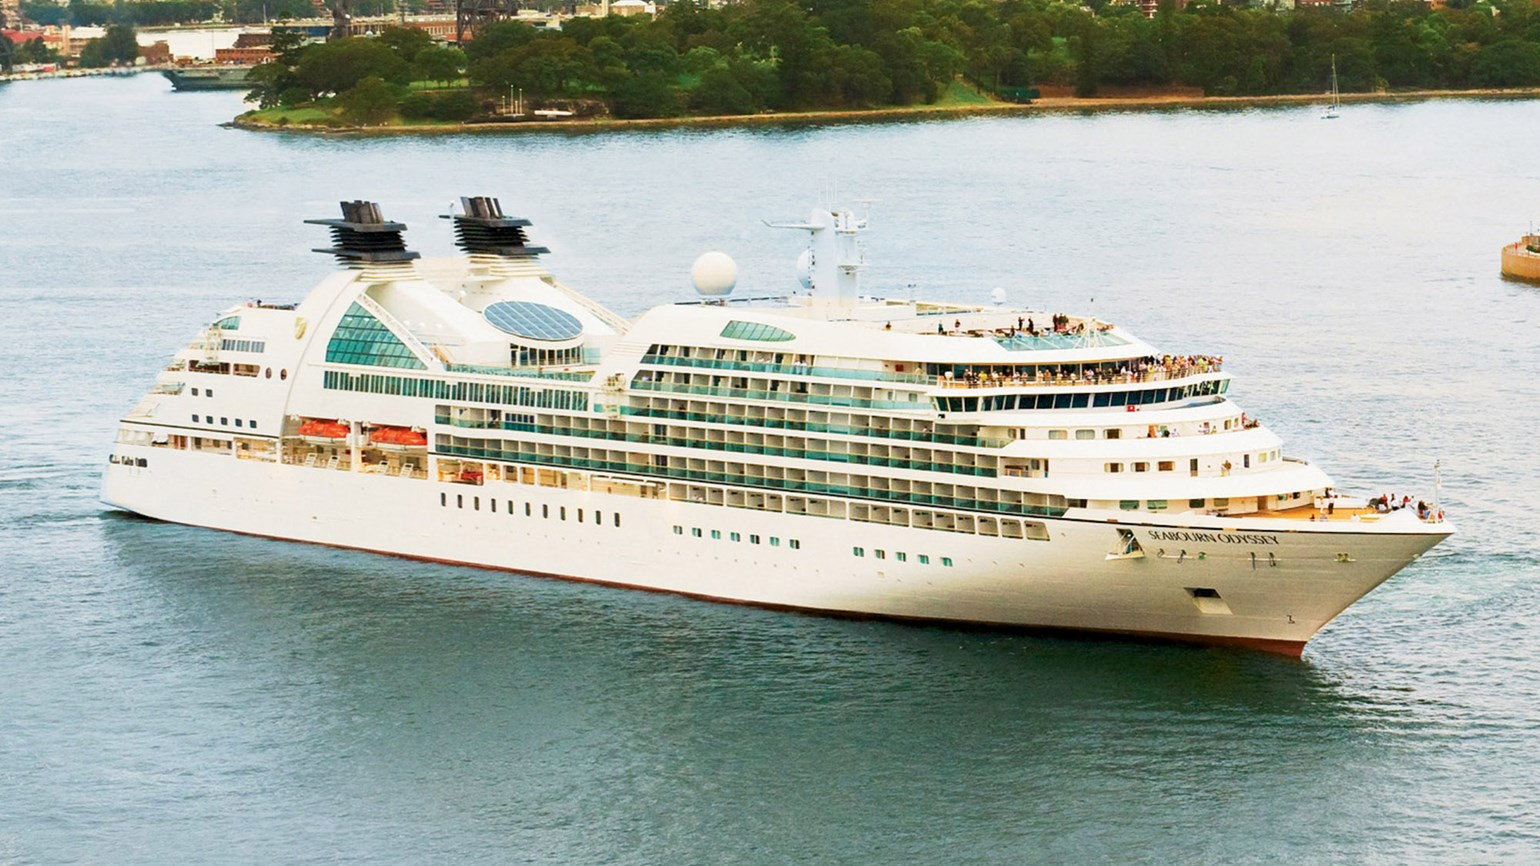 Seabourn will cruise from Barbados in July